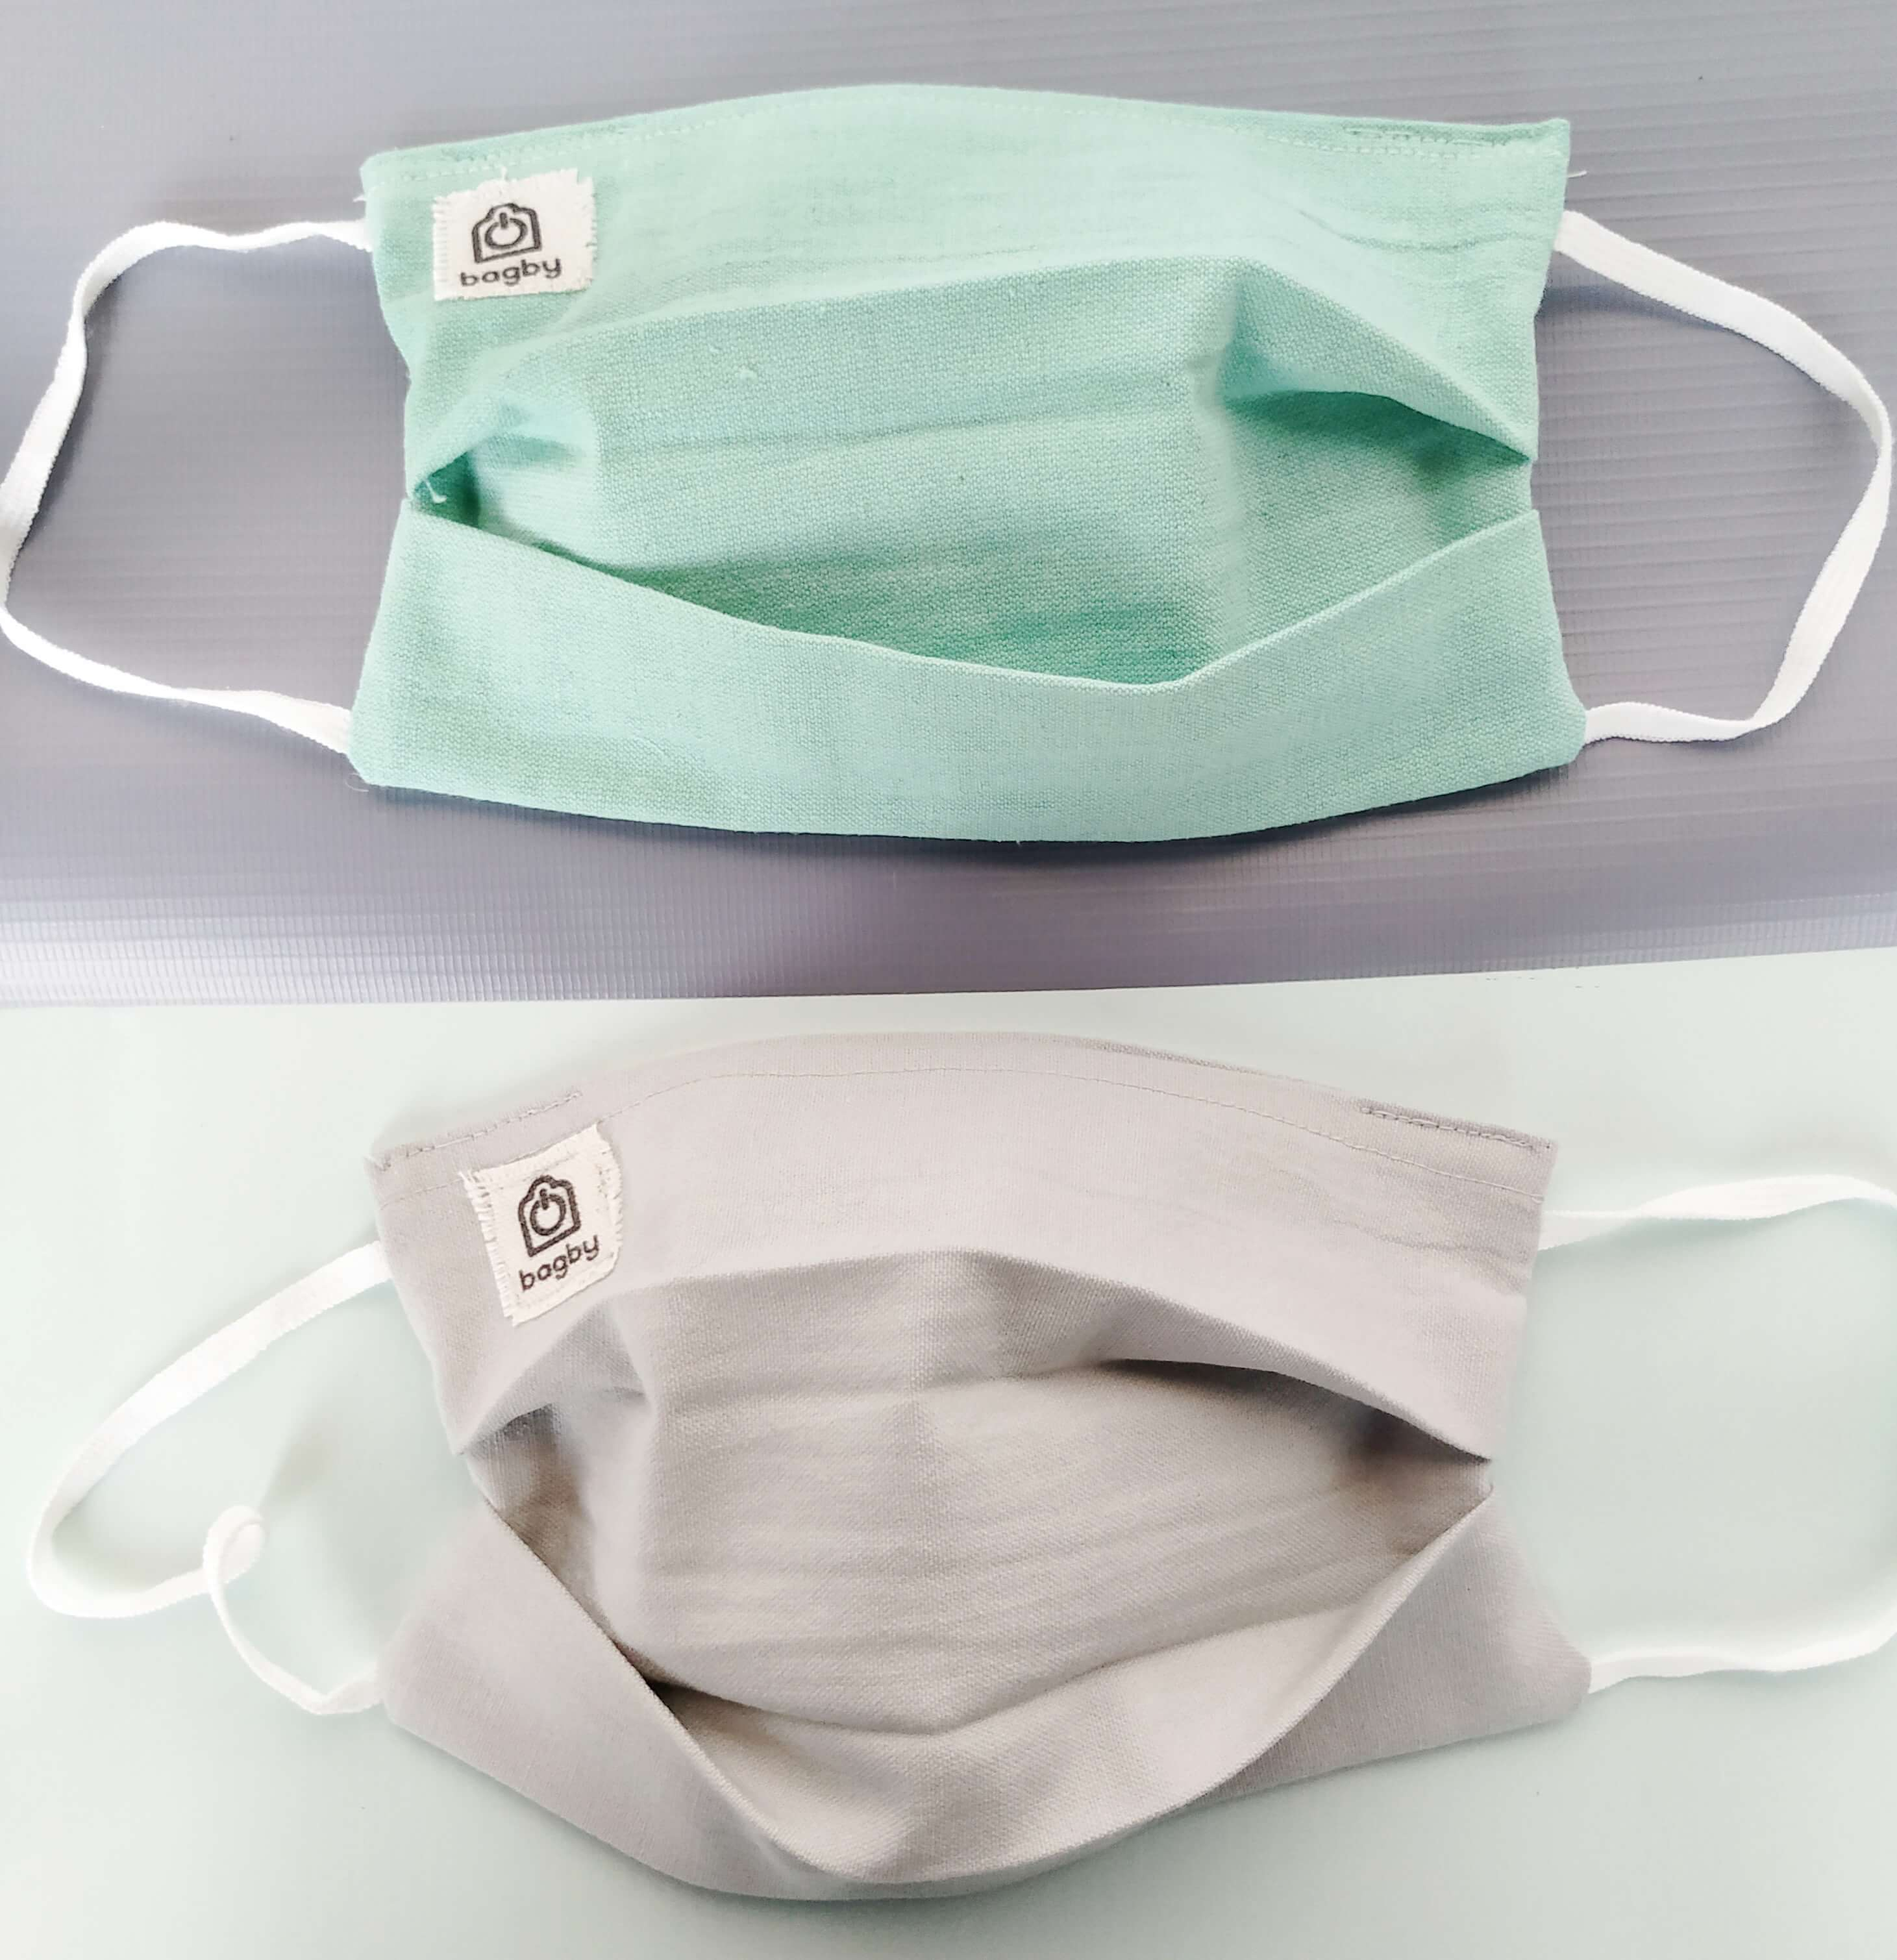 Reusable Fabric Face Mask Buy 3 Get 3 Free